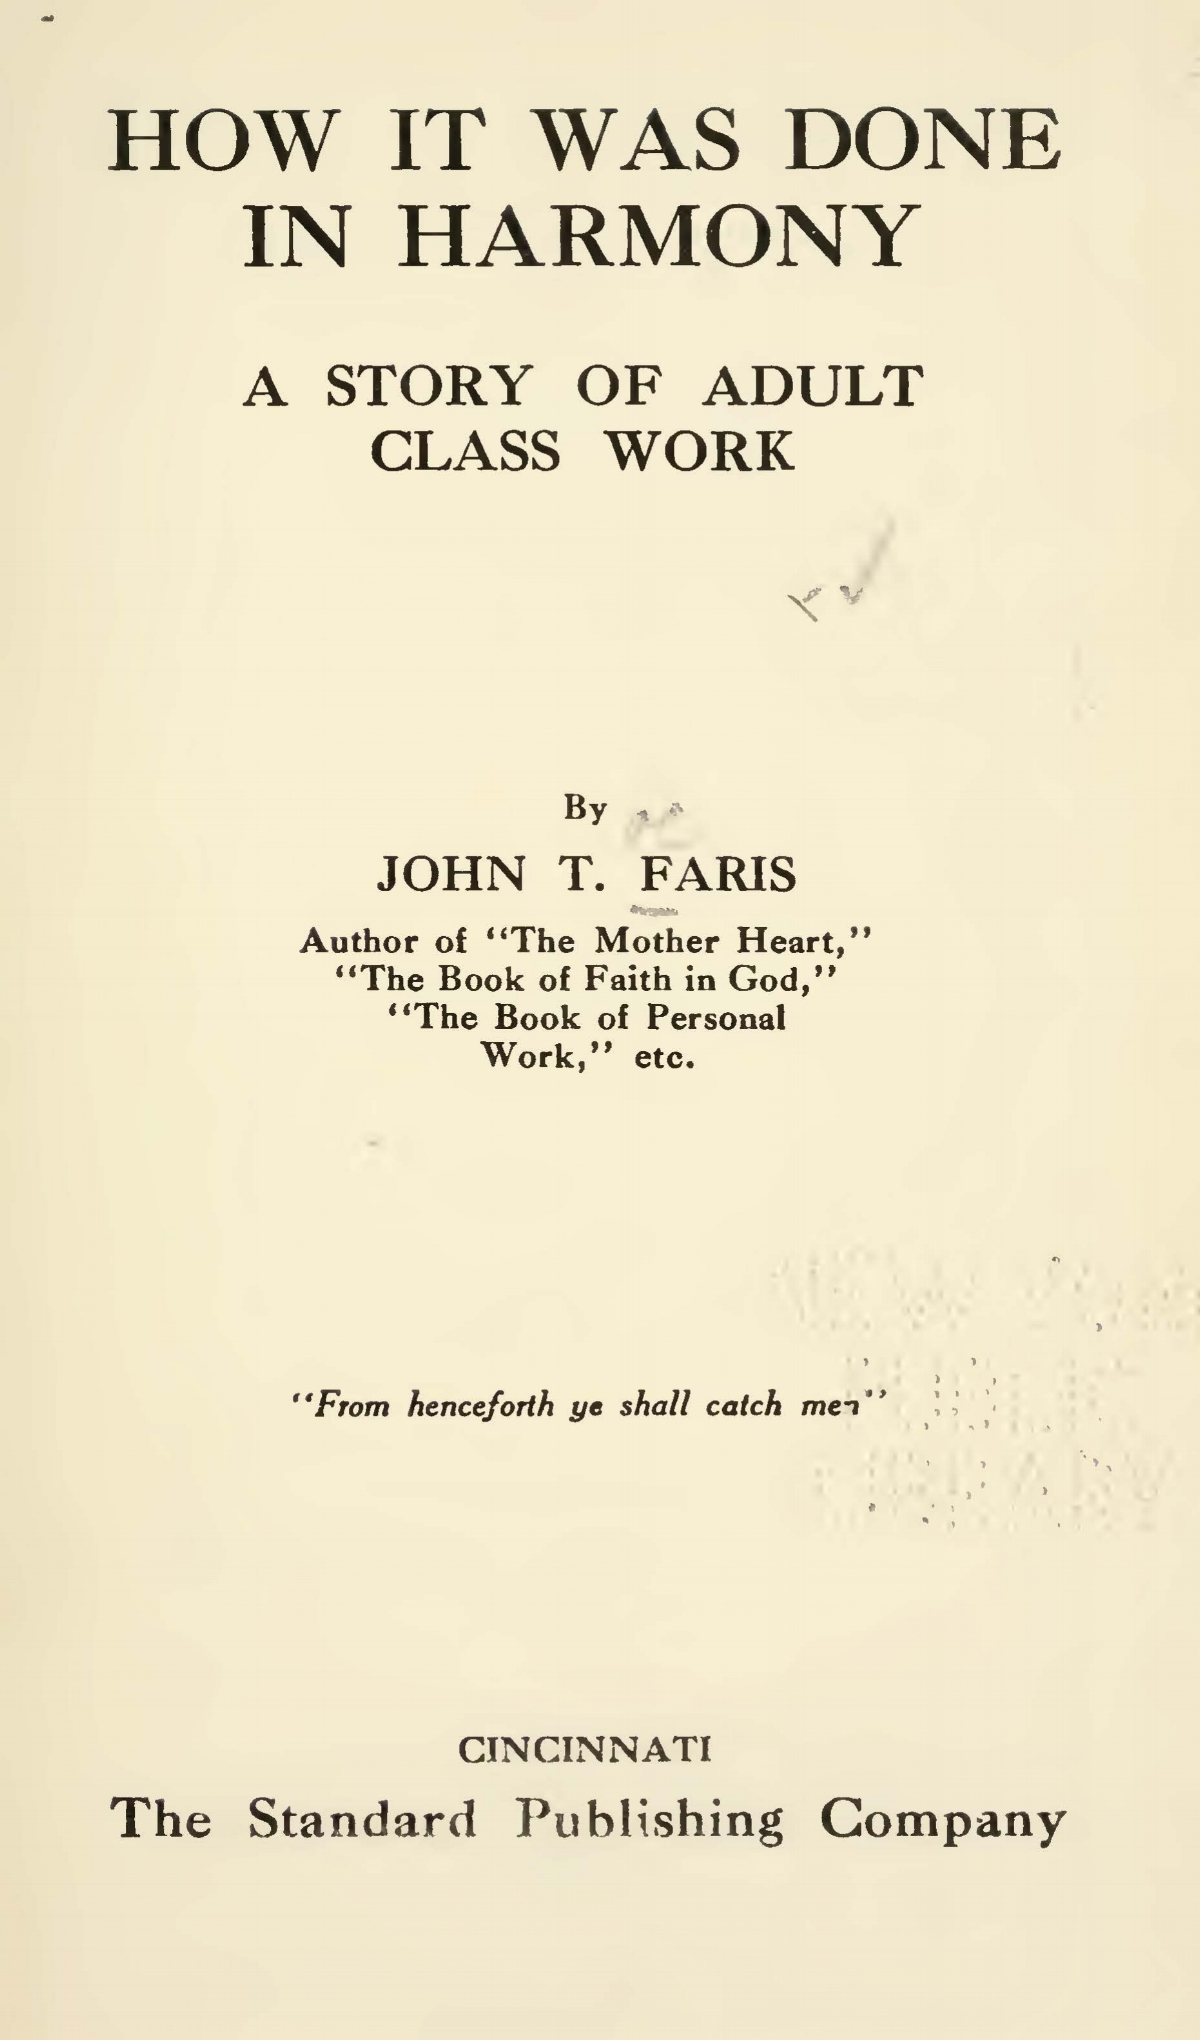 Faris, John Thomson, How It Was Done in Harmony Title Page.jpg